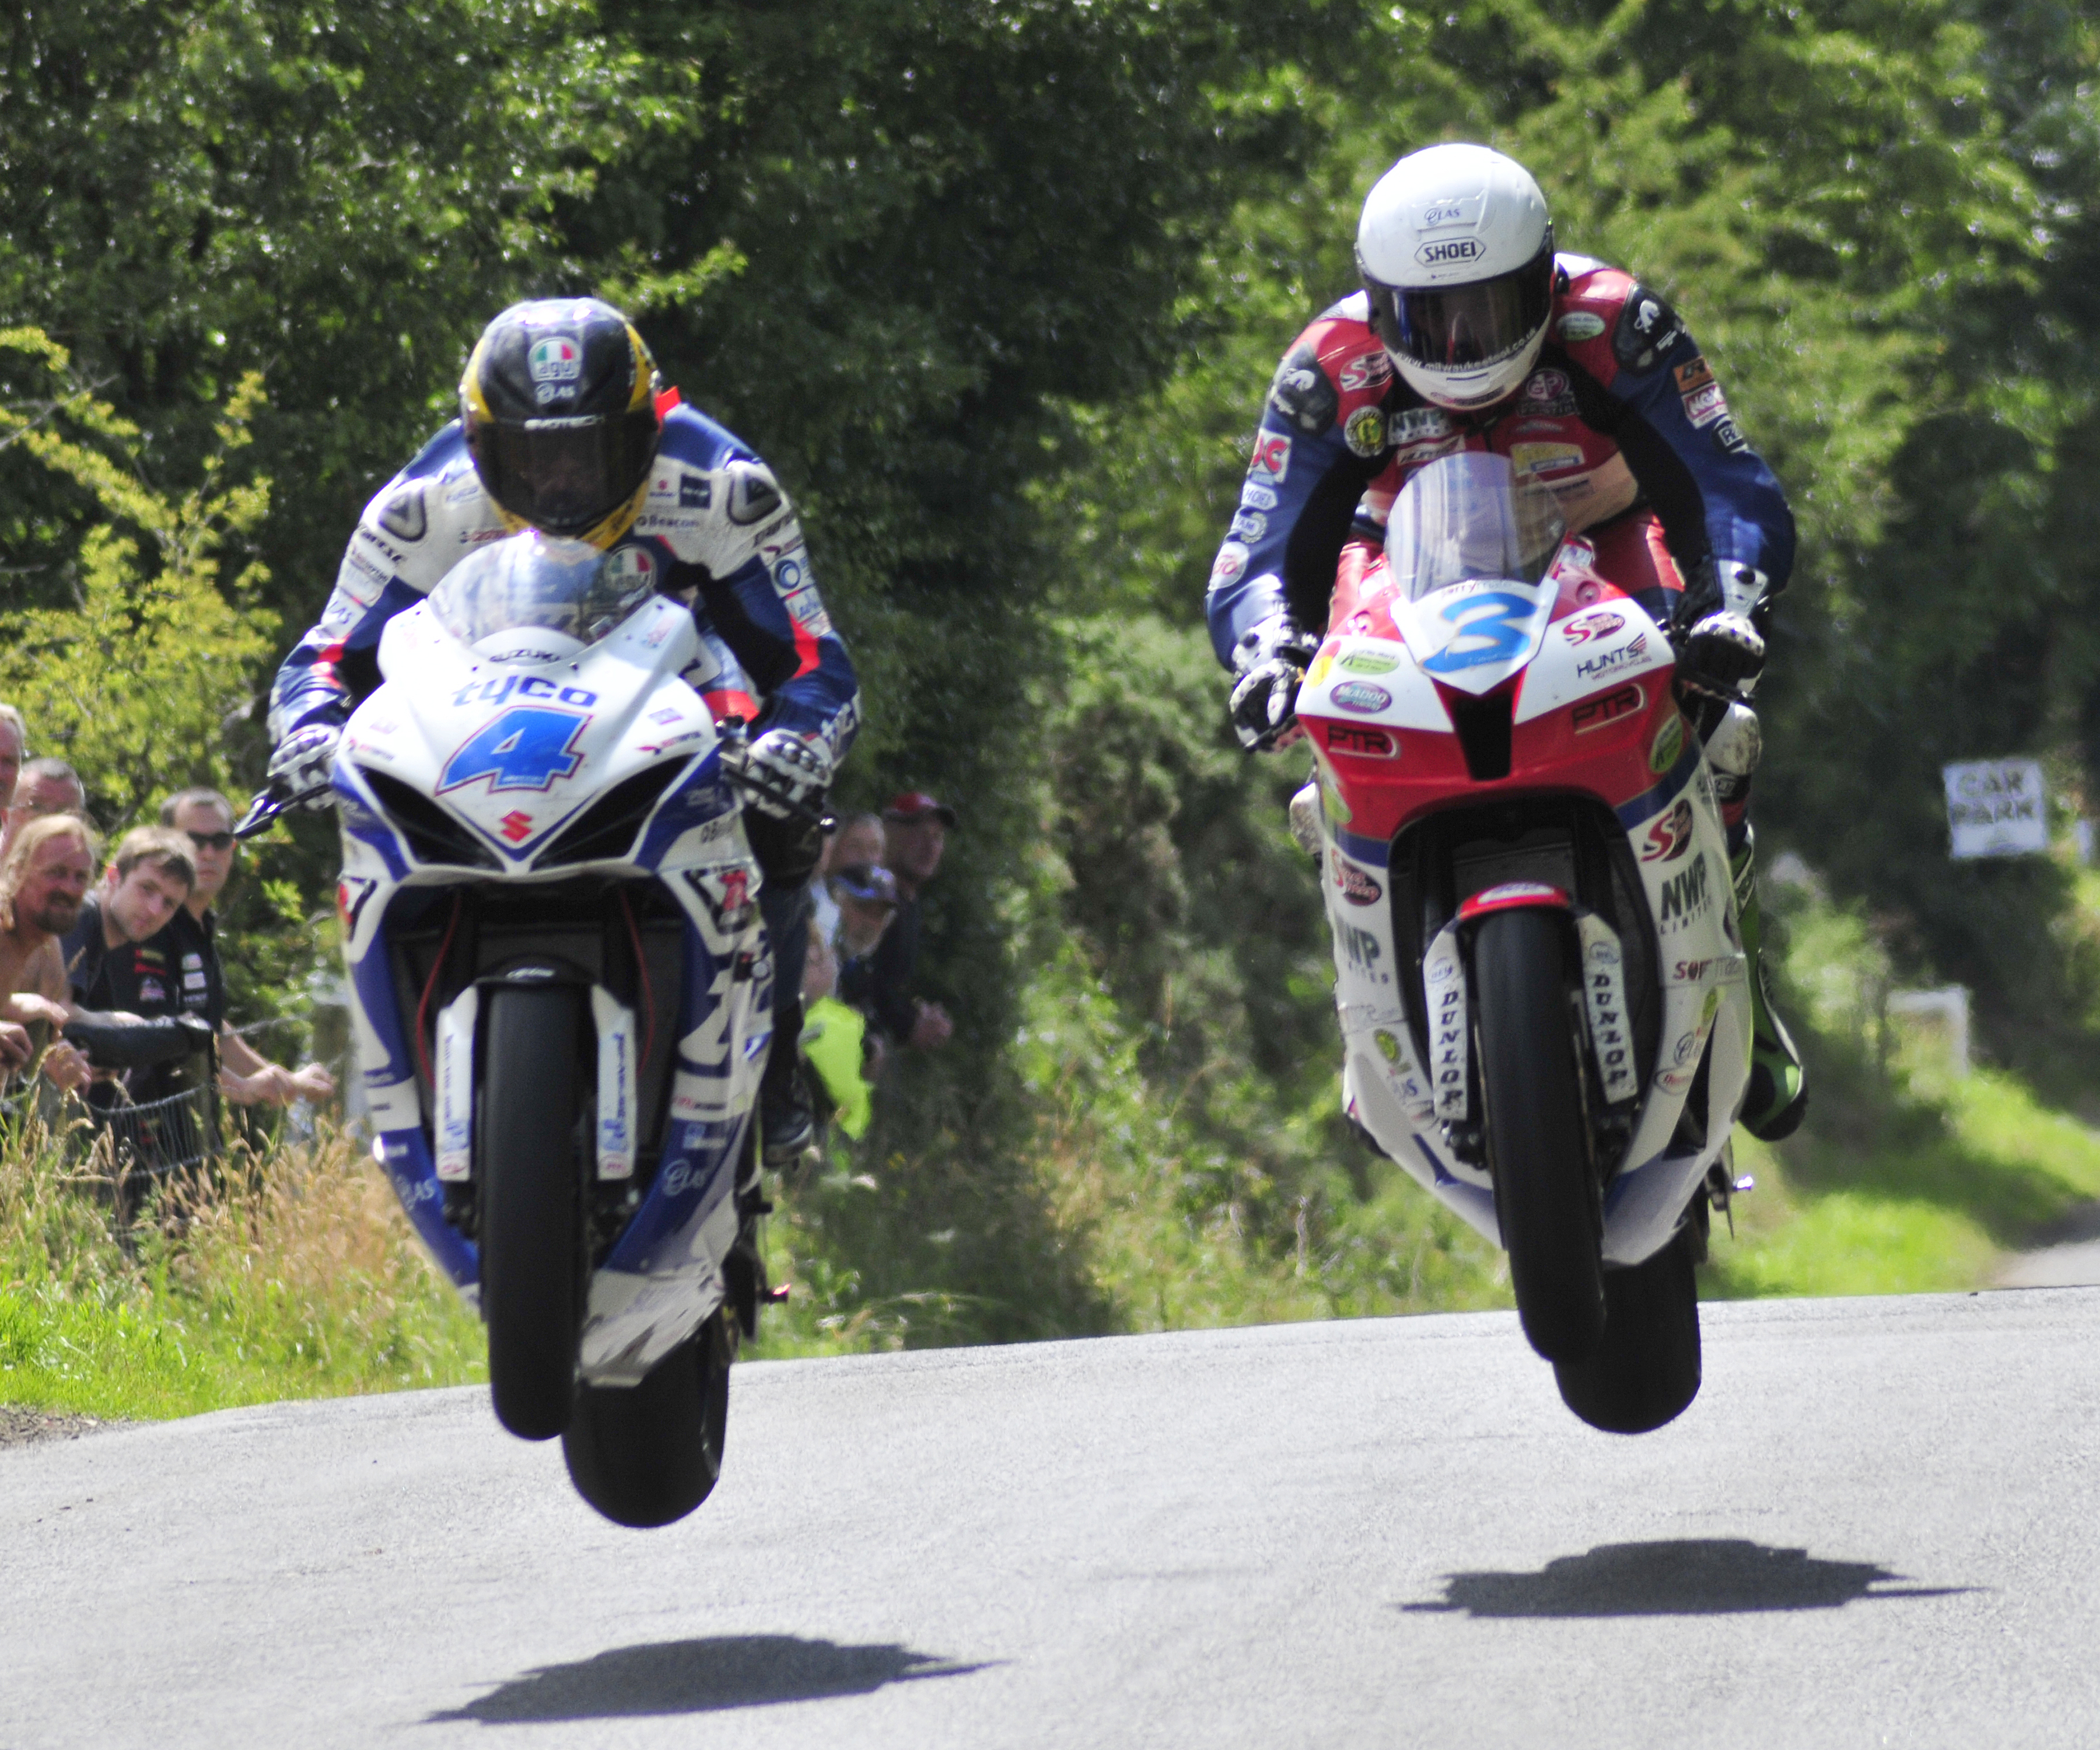 001 Guy Martin and Michael Dunlop